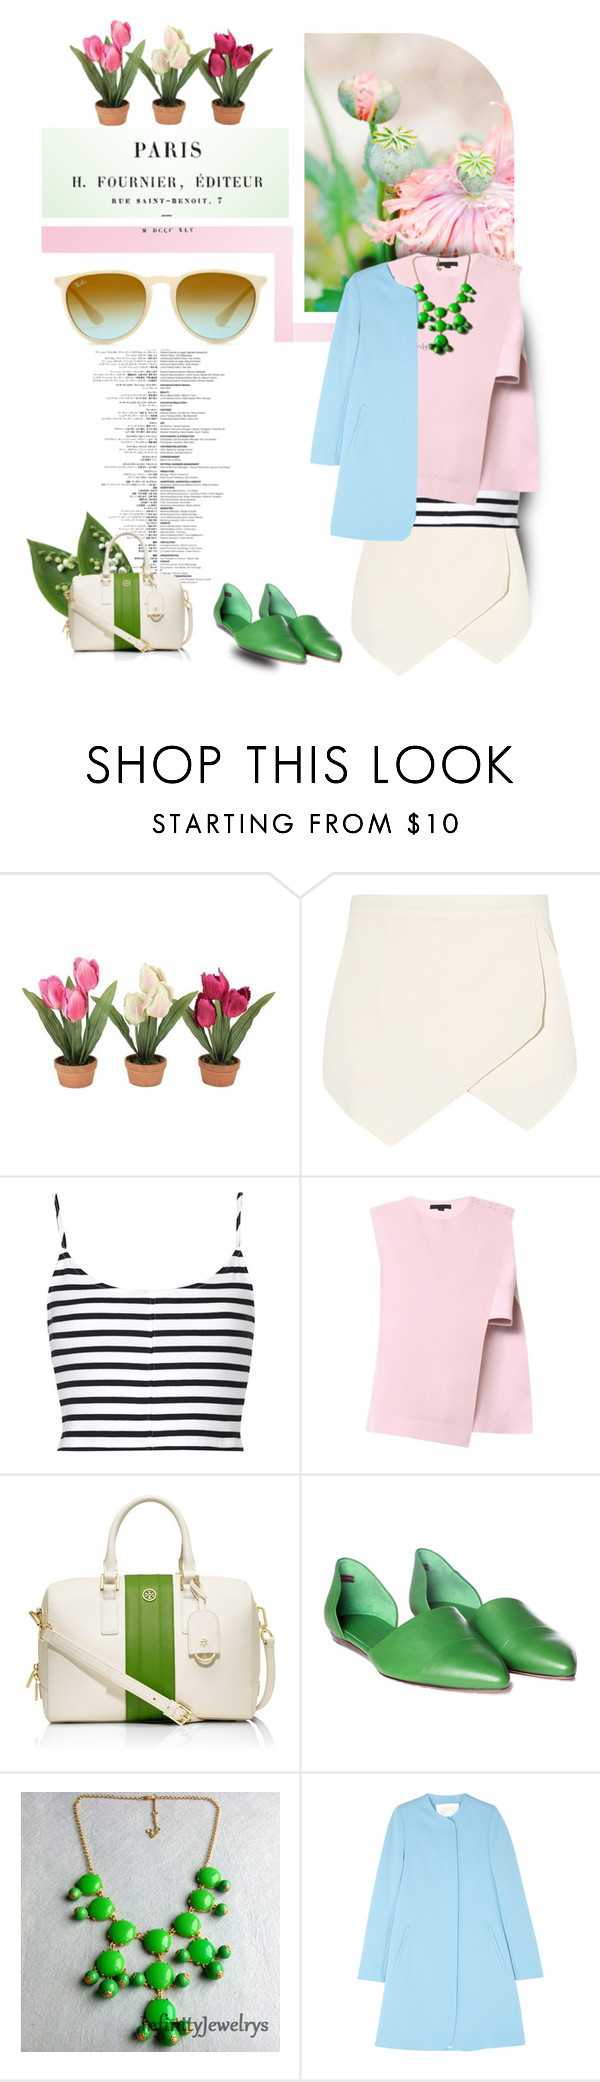 """""""Life, in Pastels"""" by pattykake ❤ liked on Polyvore featuring Trilogy, Topshop, Alexander Wang, Tory Burch, Jenni Kayne and Goat"""